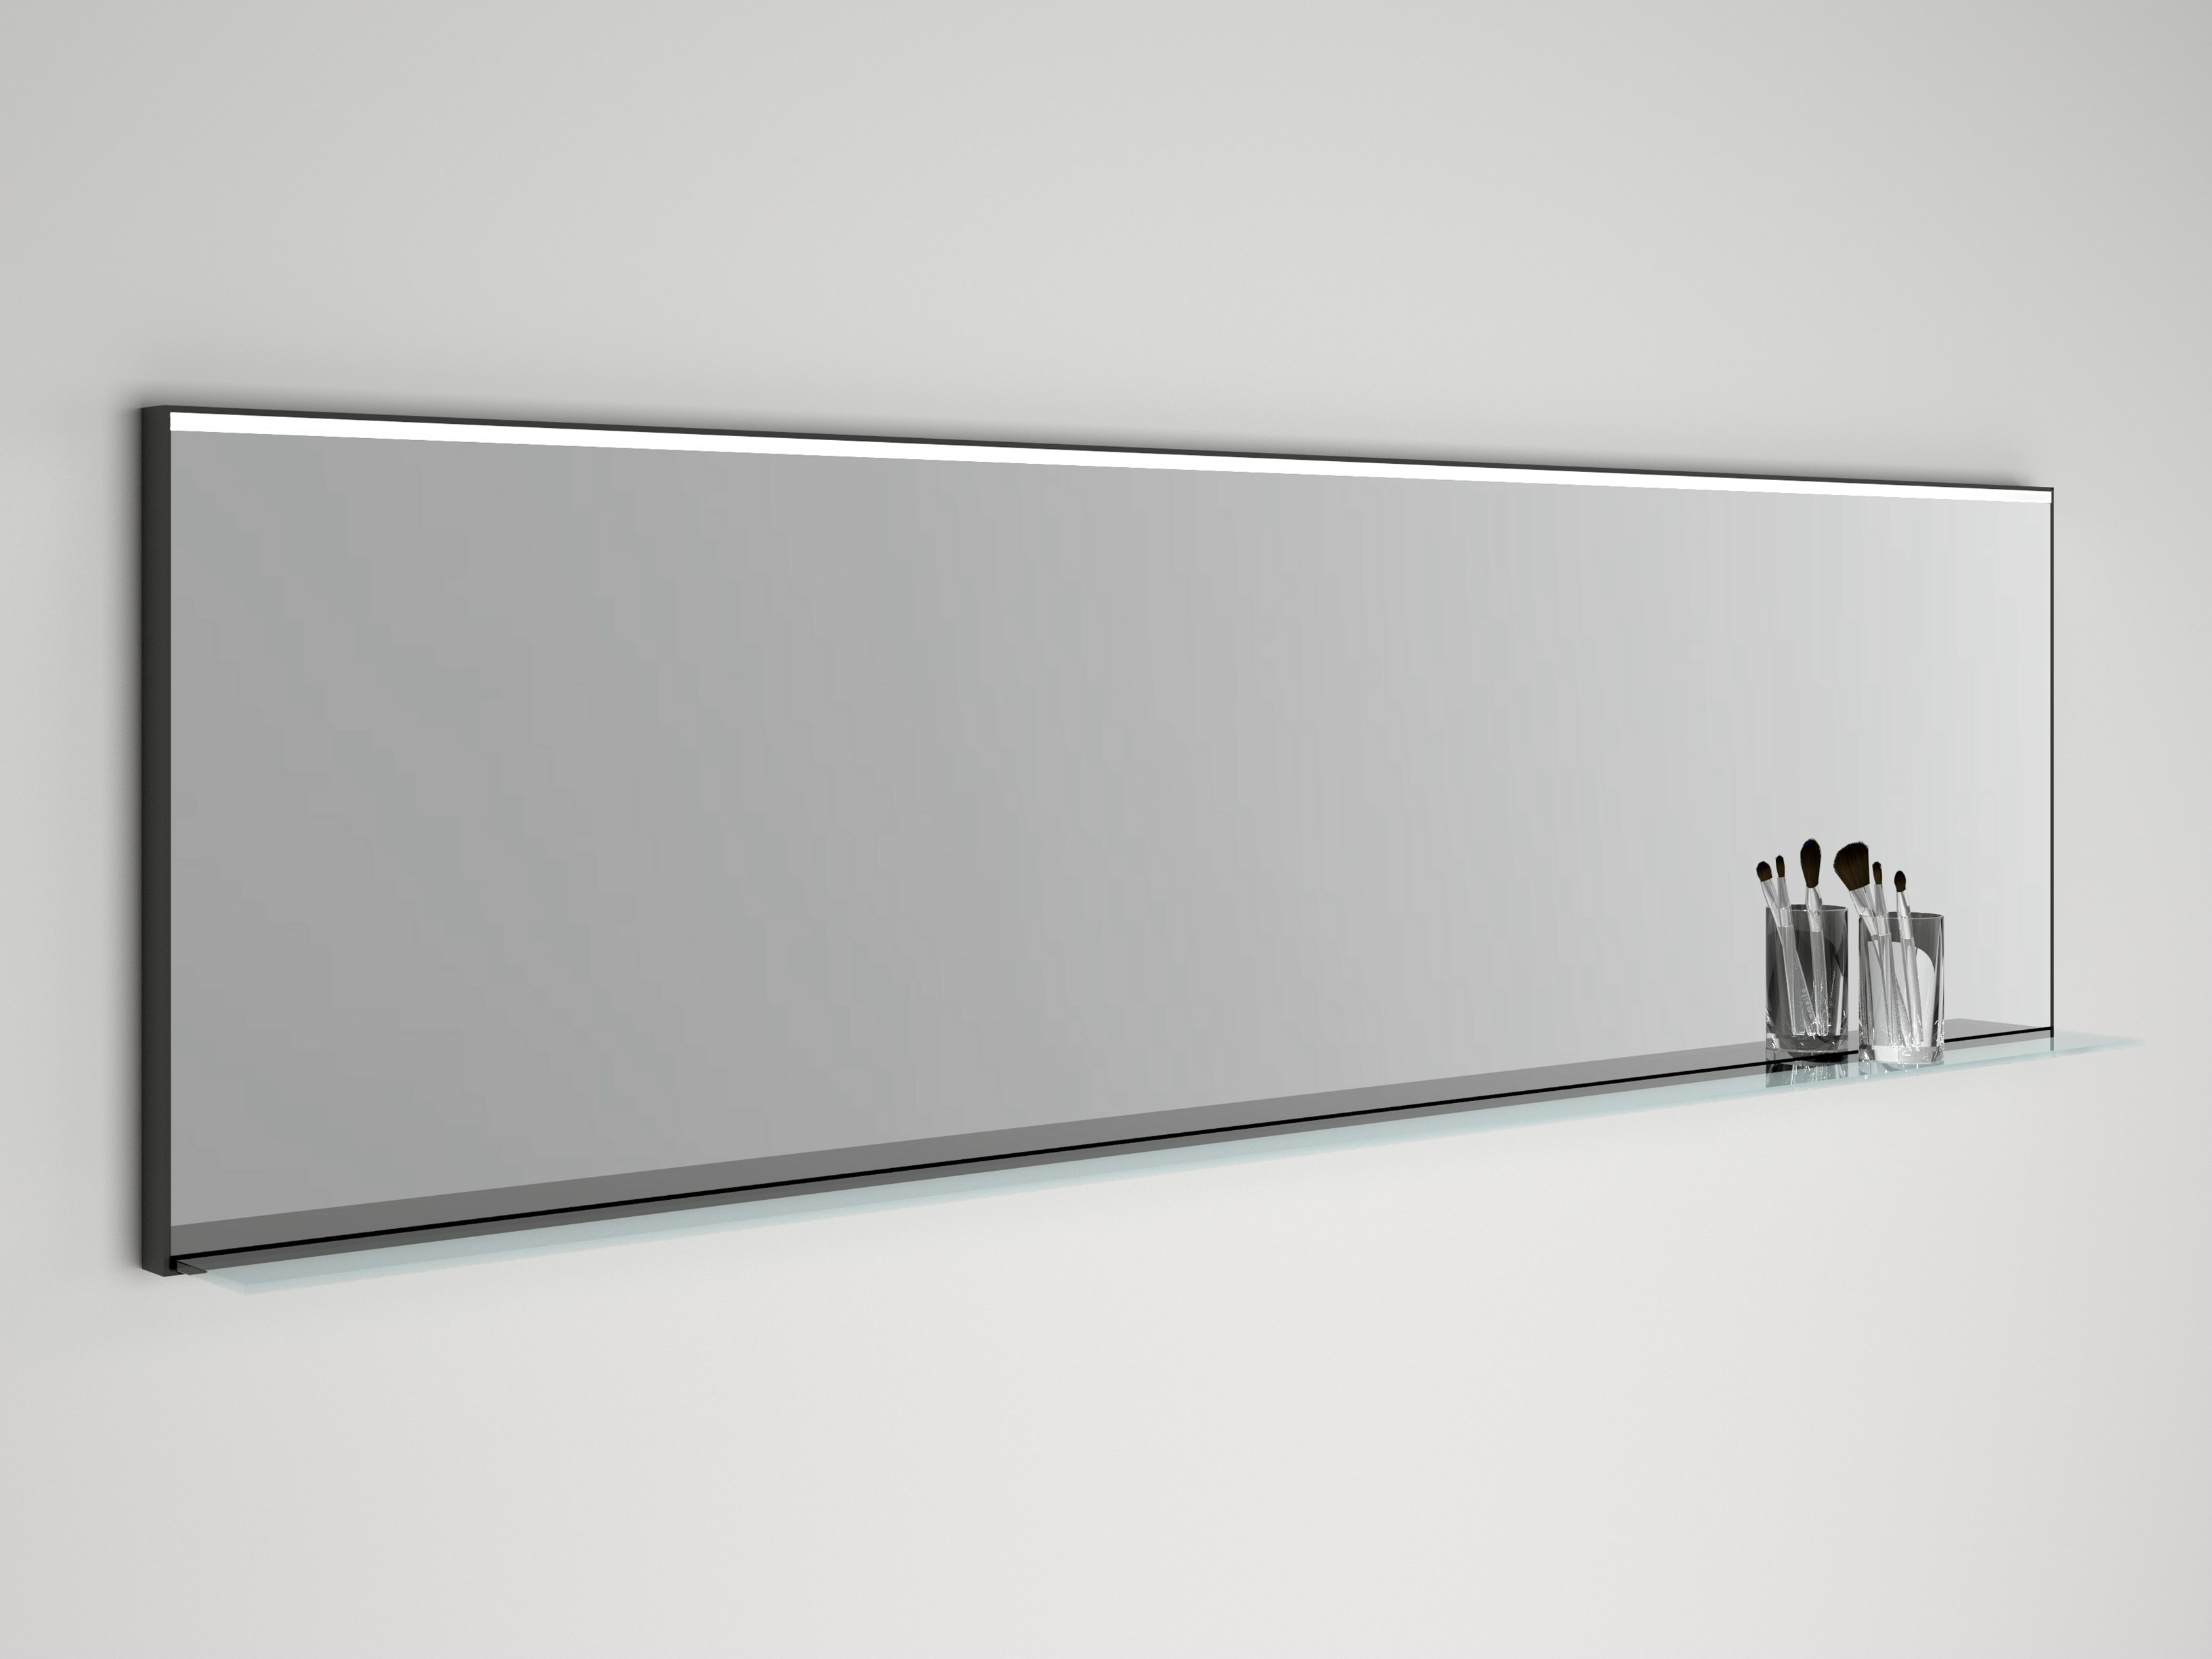 Miroir mural avec clairage int gr led line by boffi for Miroir eclairage integre